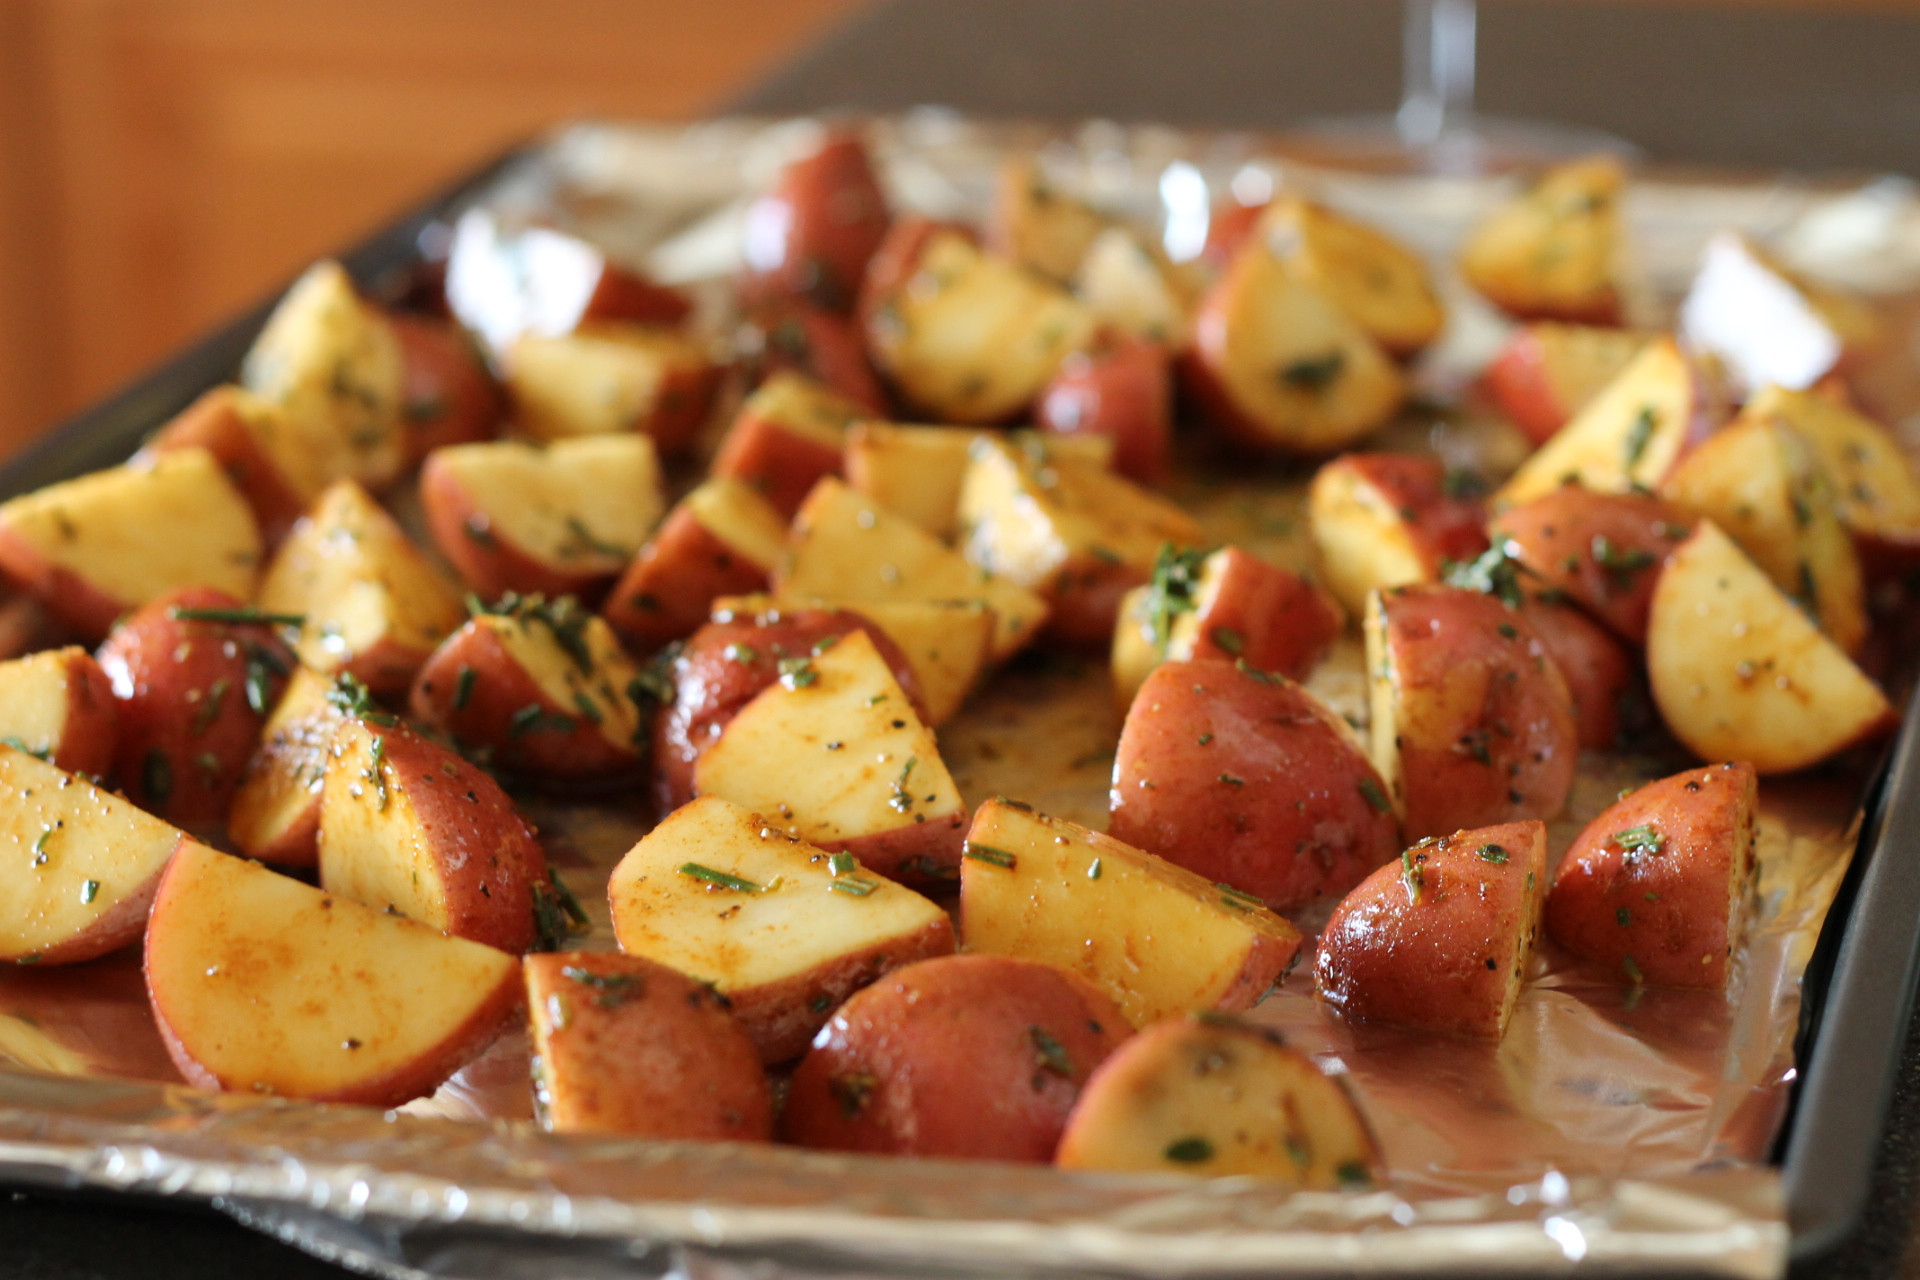 Healthy Red Potato Recipes  A healthy side dish roasted red potatoes